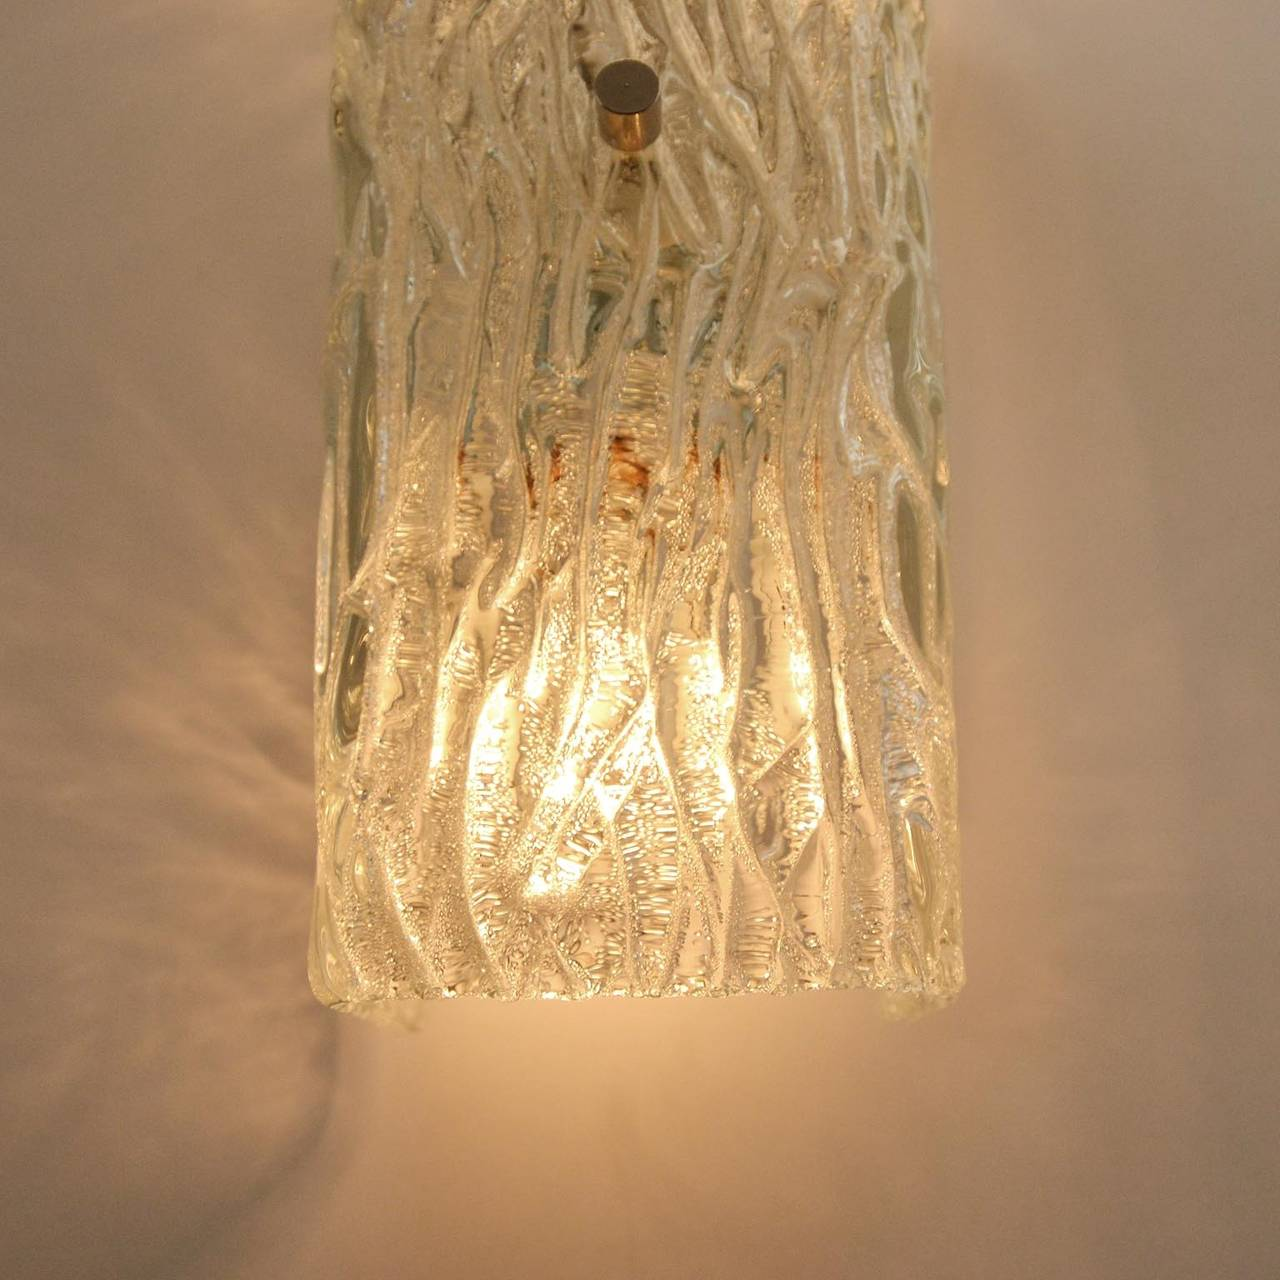 Pair of Kalmar Glass Sconces or Wall Lights, 1950s For Sale 2